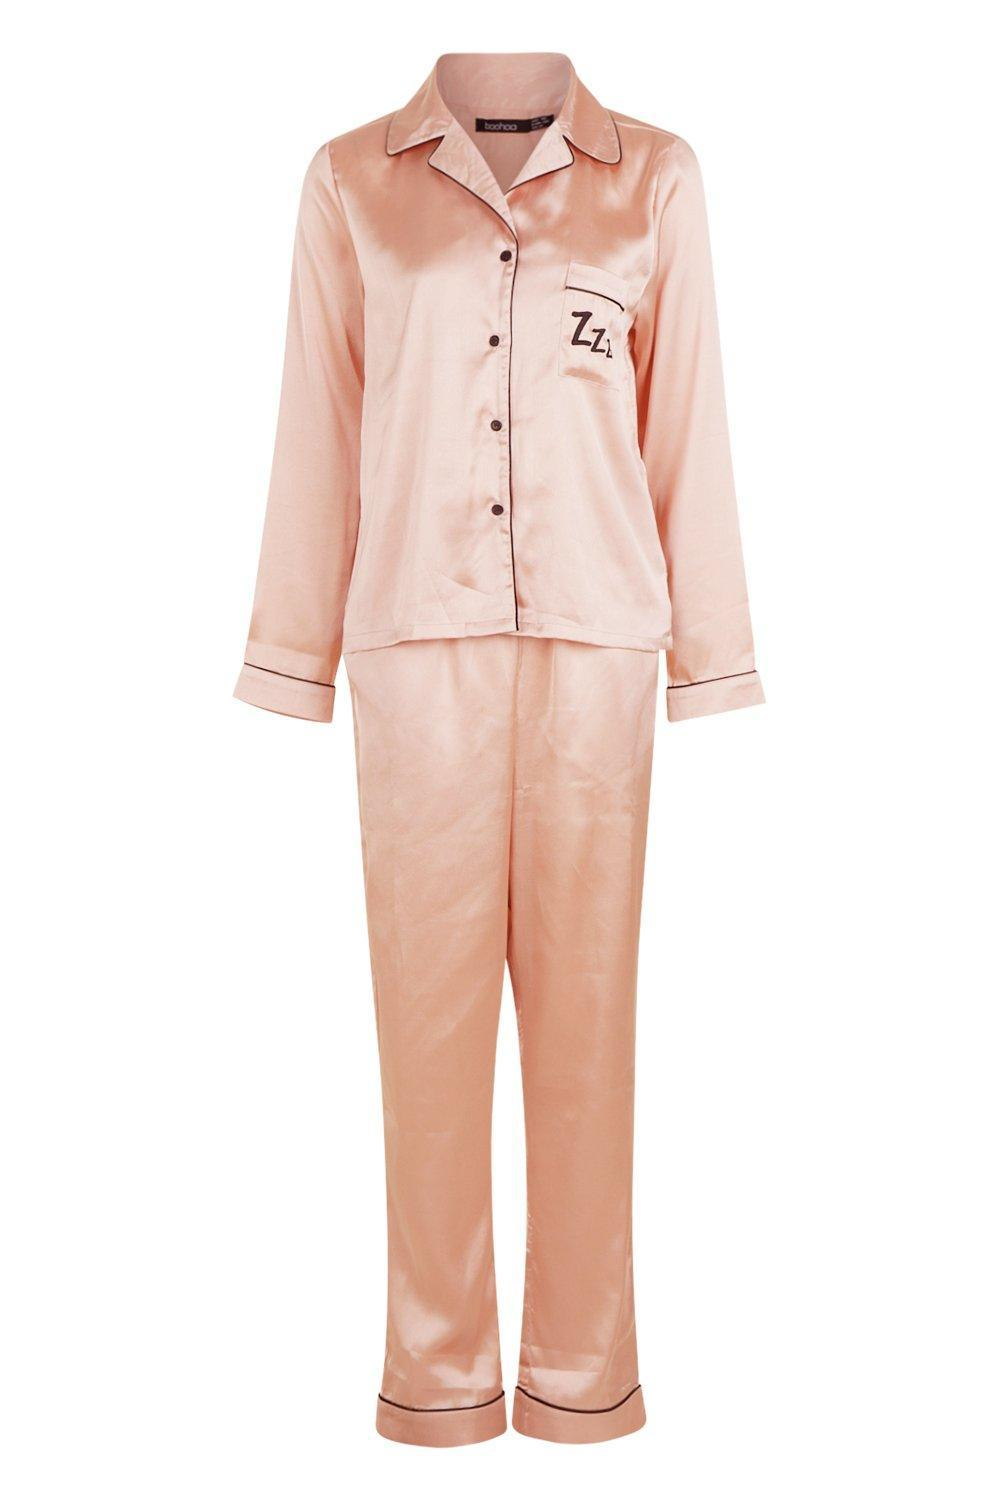 e81c7234 Boohoo - Pink Zzz Satin Button Through Trouser Set - Lyst. View fullscreen